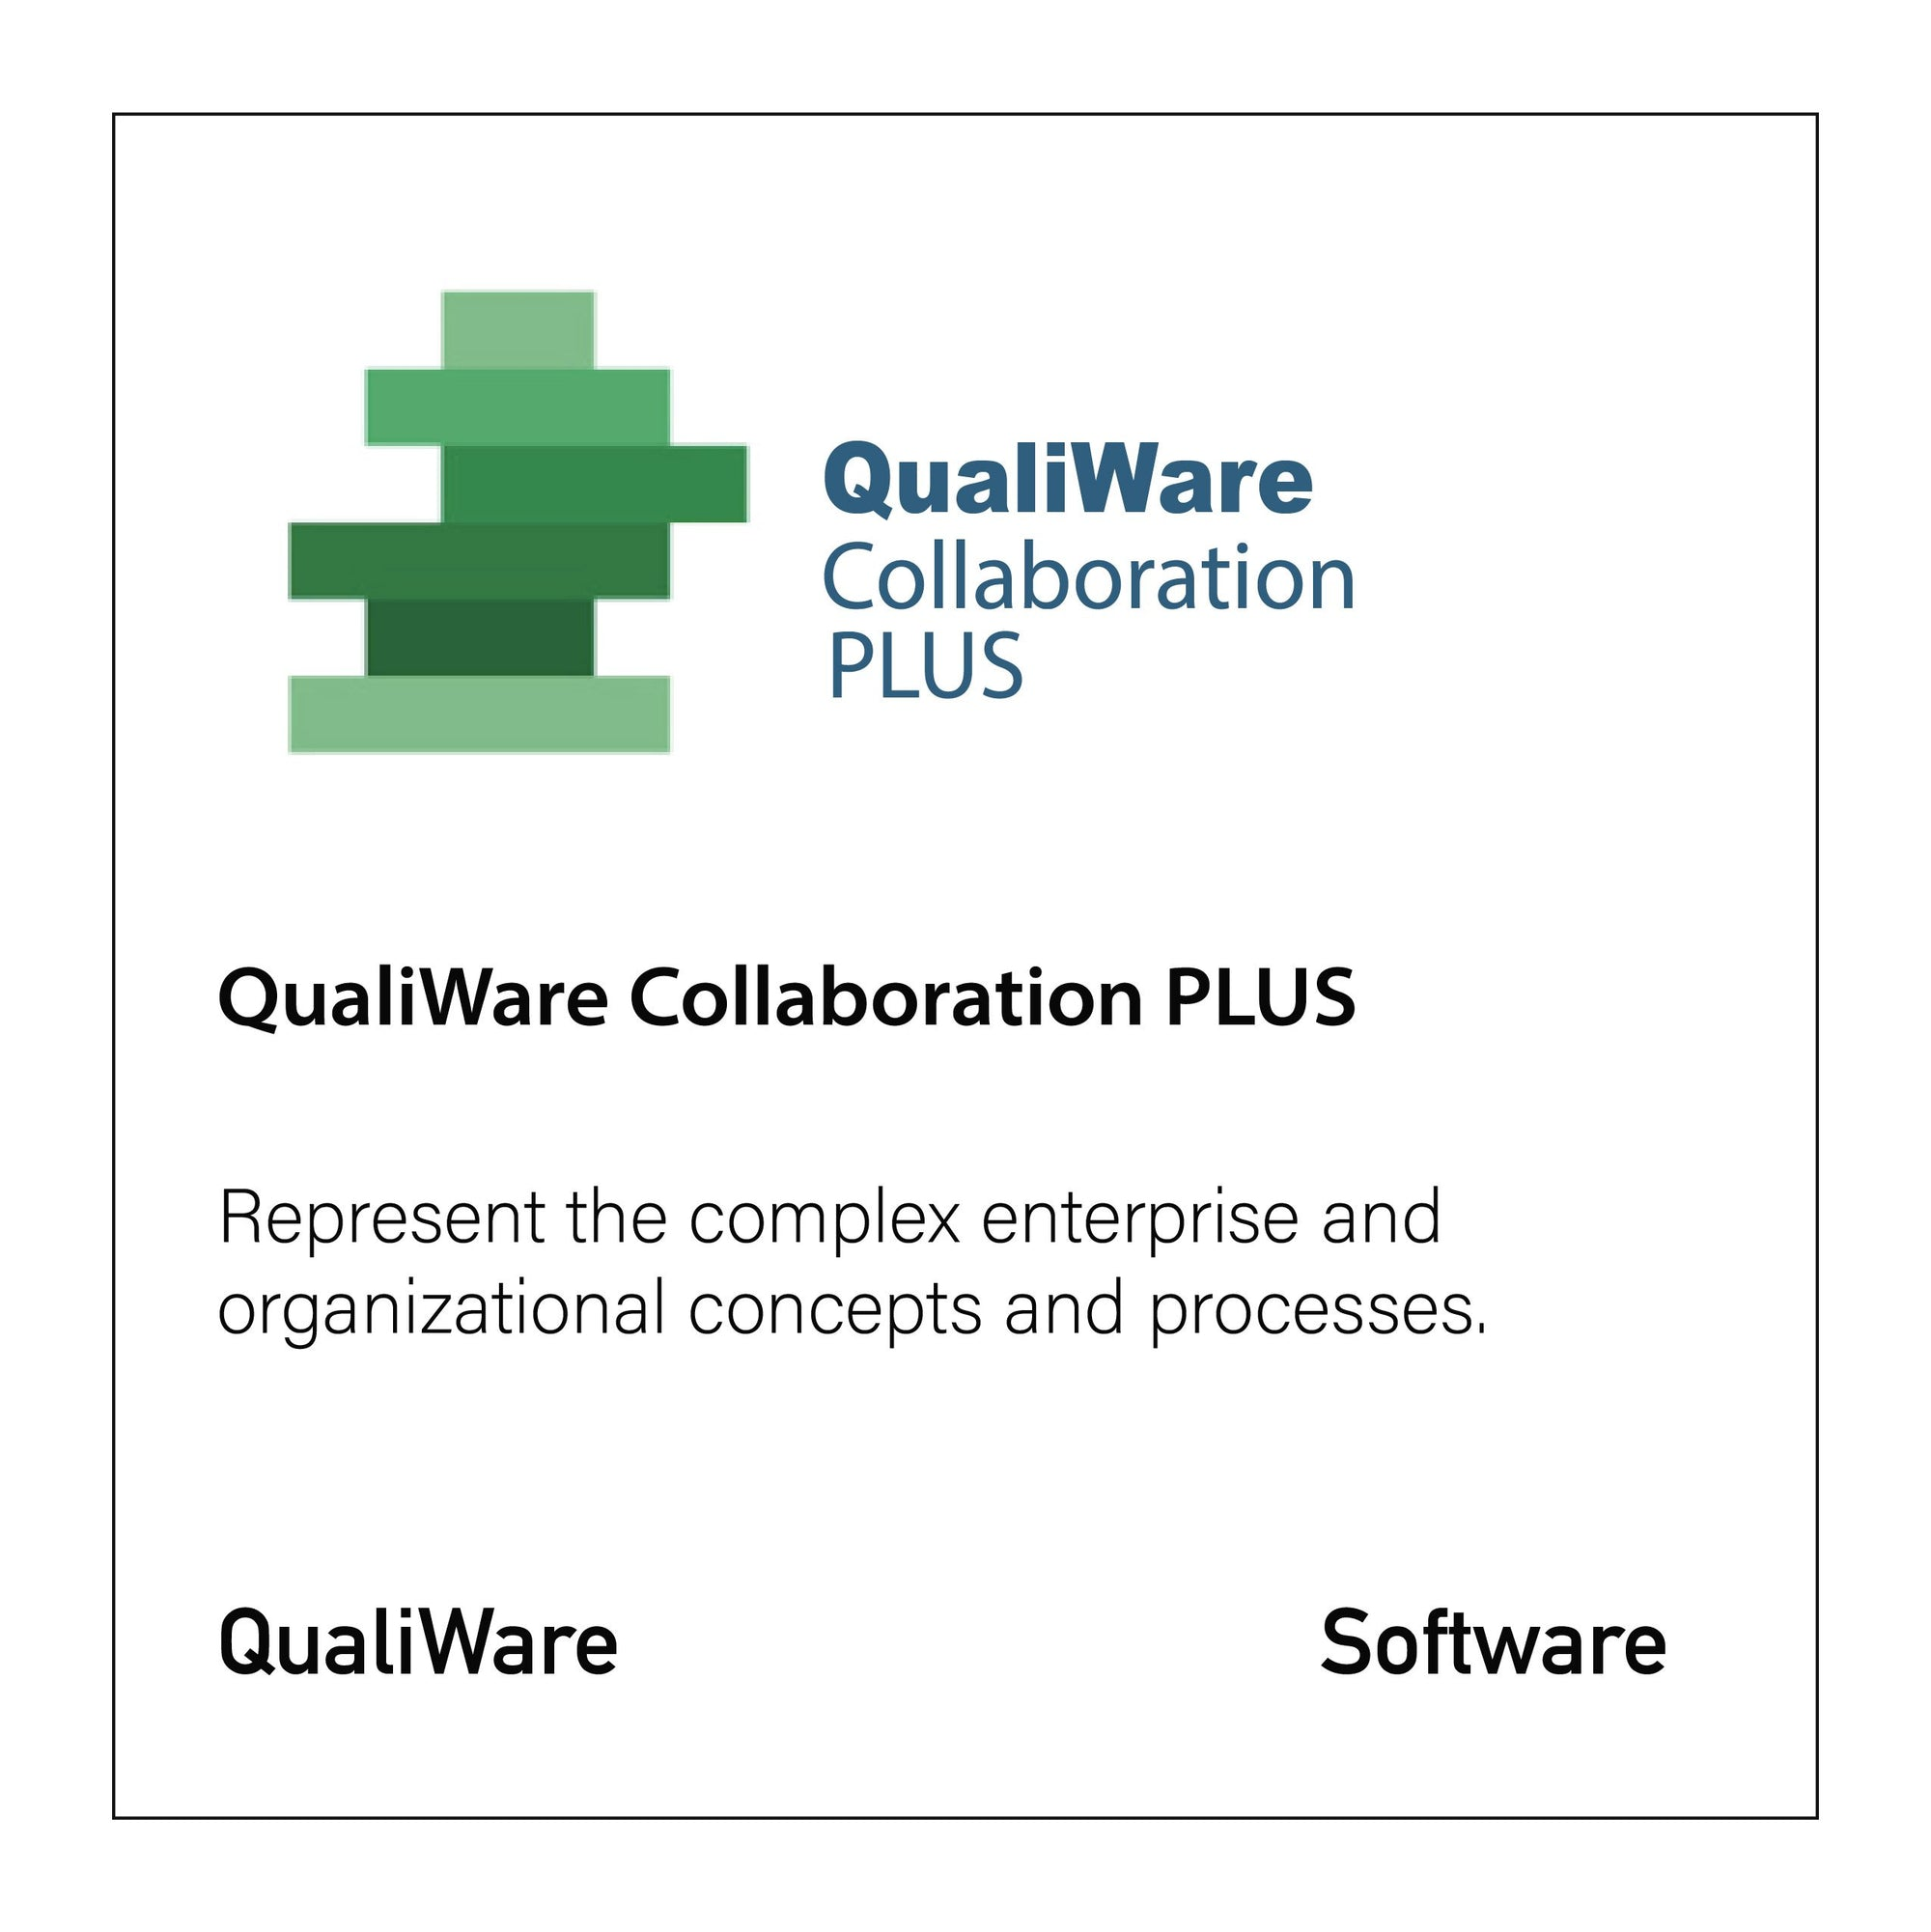 QualiWare Collaboration PLUS - CloseReach Ltd